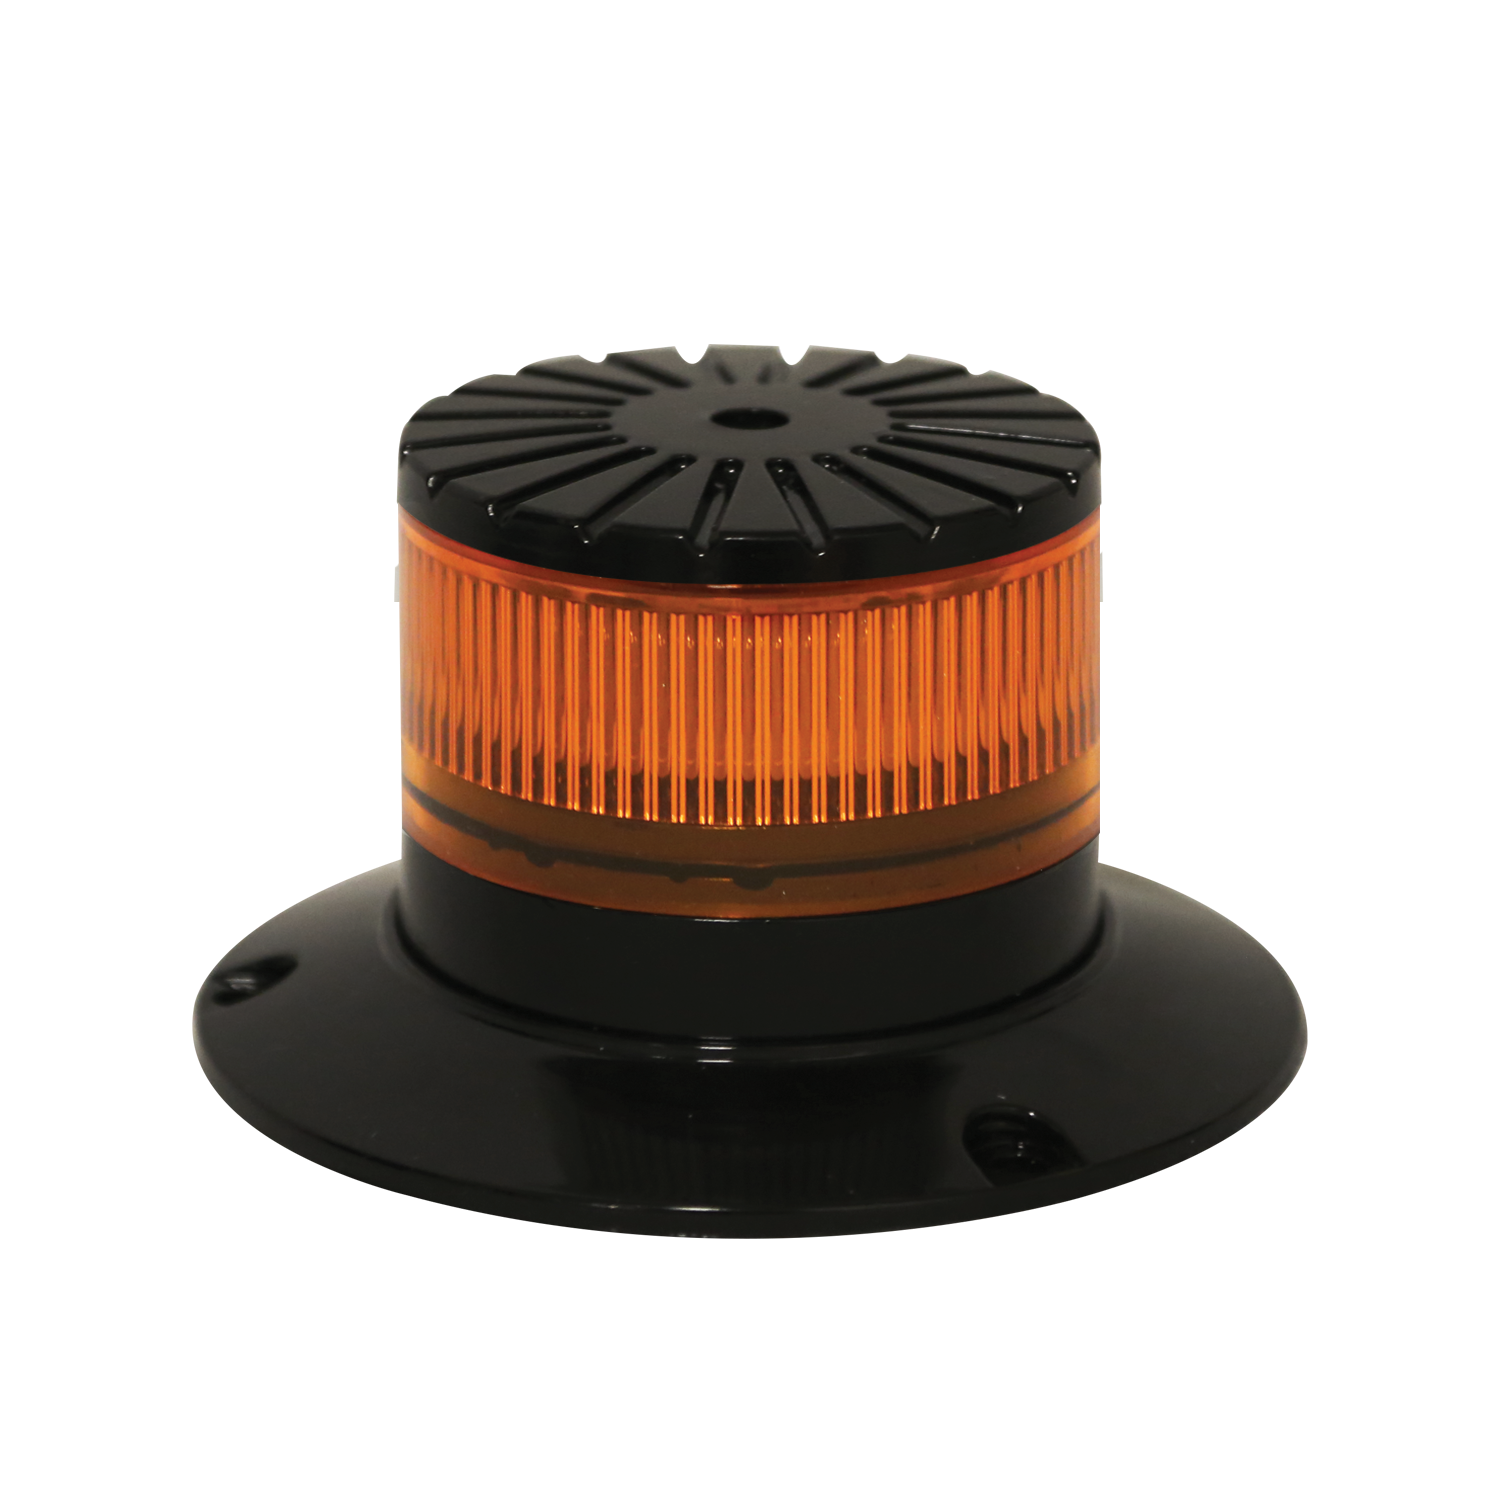 ECCO Lighting - LED Beacon: Aluminium base | mini profile | 12-24VDC | 41 flash patterns | CLASS 2 | AMB